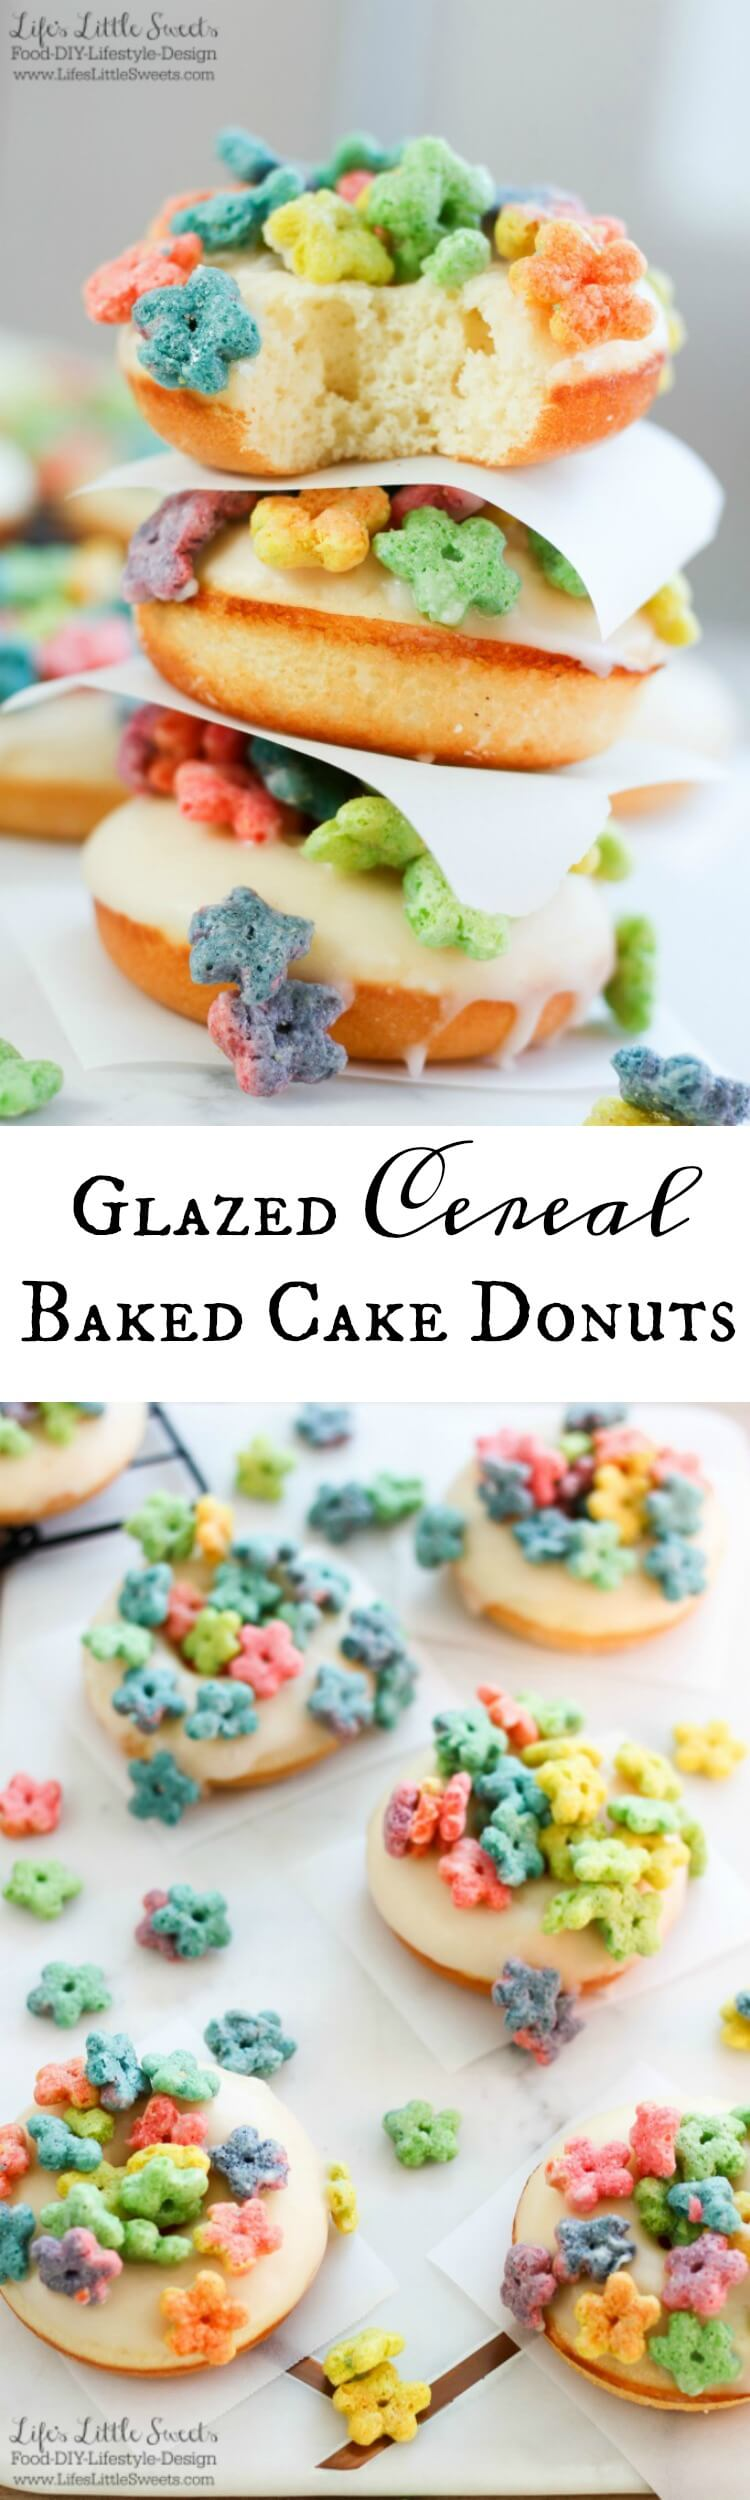 Glazed Cereal Baked Cake Donuts are a fun & delicious way to have your breakfast cereal! These fresh-baked cake donuts are dipped in vanilla glaze and sprinkled with cereal. (makes 12 donuts) #ad #CerealShakeup #CerealAnytime #CollectiveBias @Walmart @Post @MaltoMeal